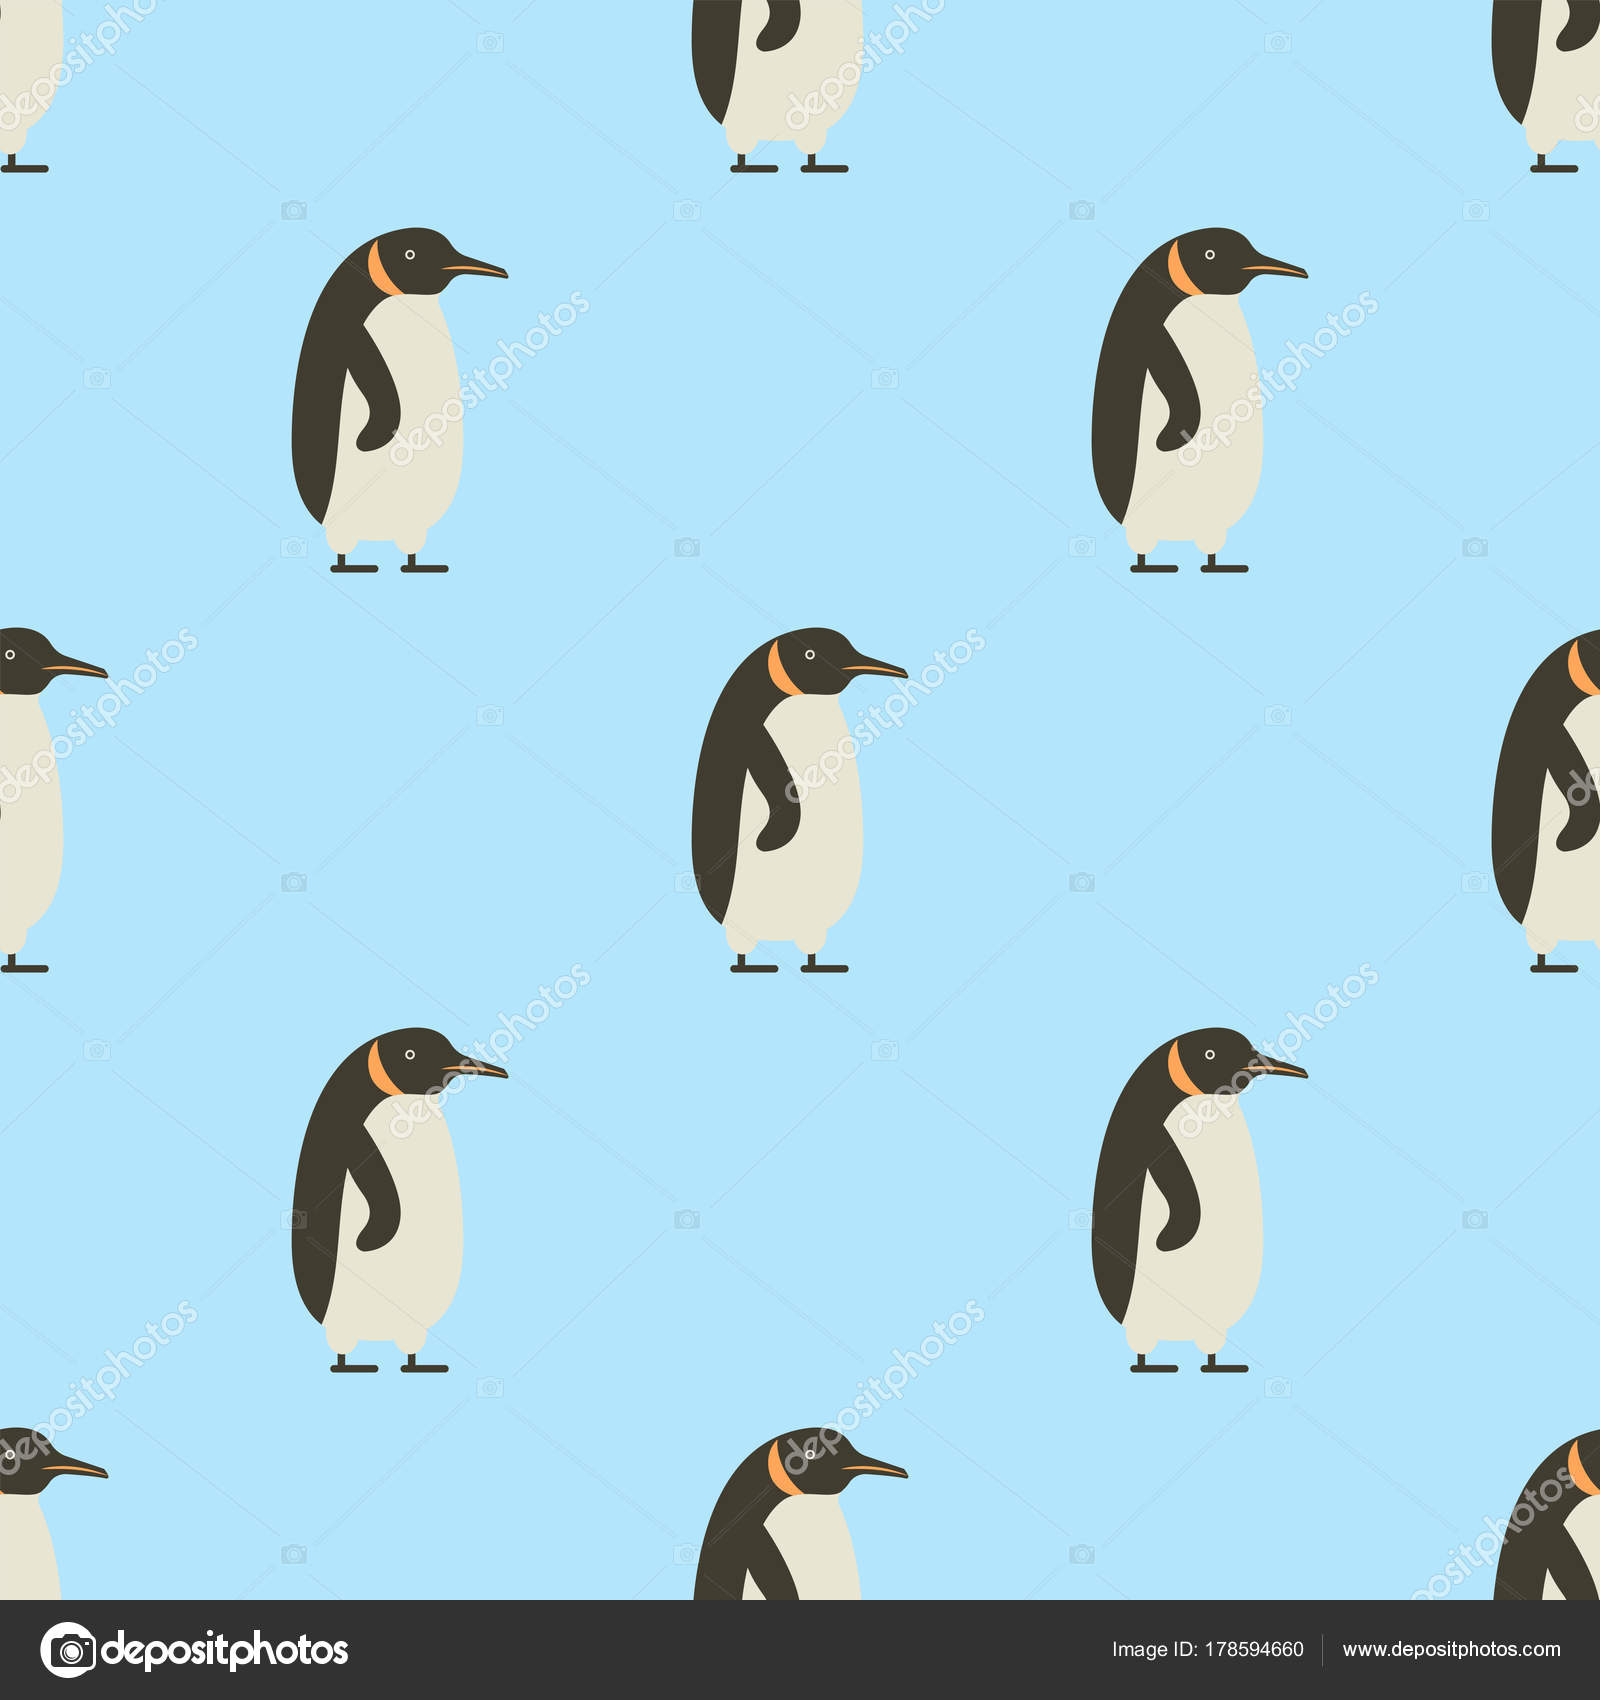 Endless Seamless Pattern Of Penguins On Blue Background Winter Cute Baby Bird Decoration Funny Cartoon Cold Ice Animal Wallpaper Vector Illustration